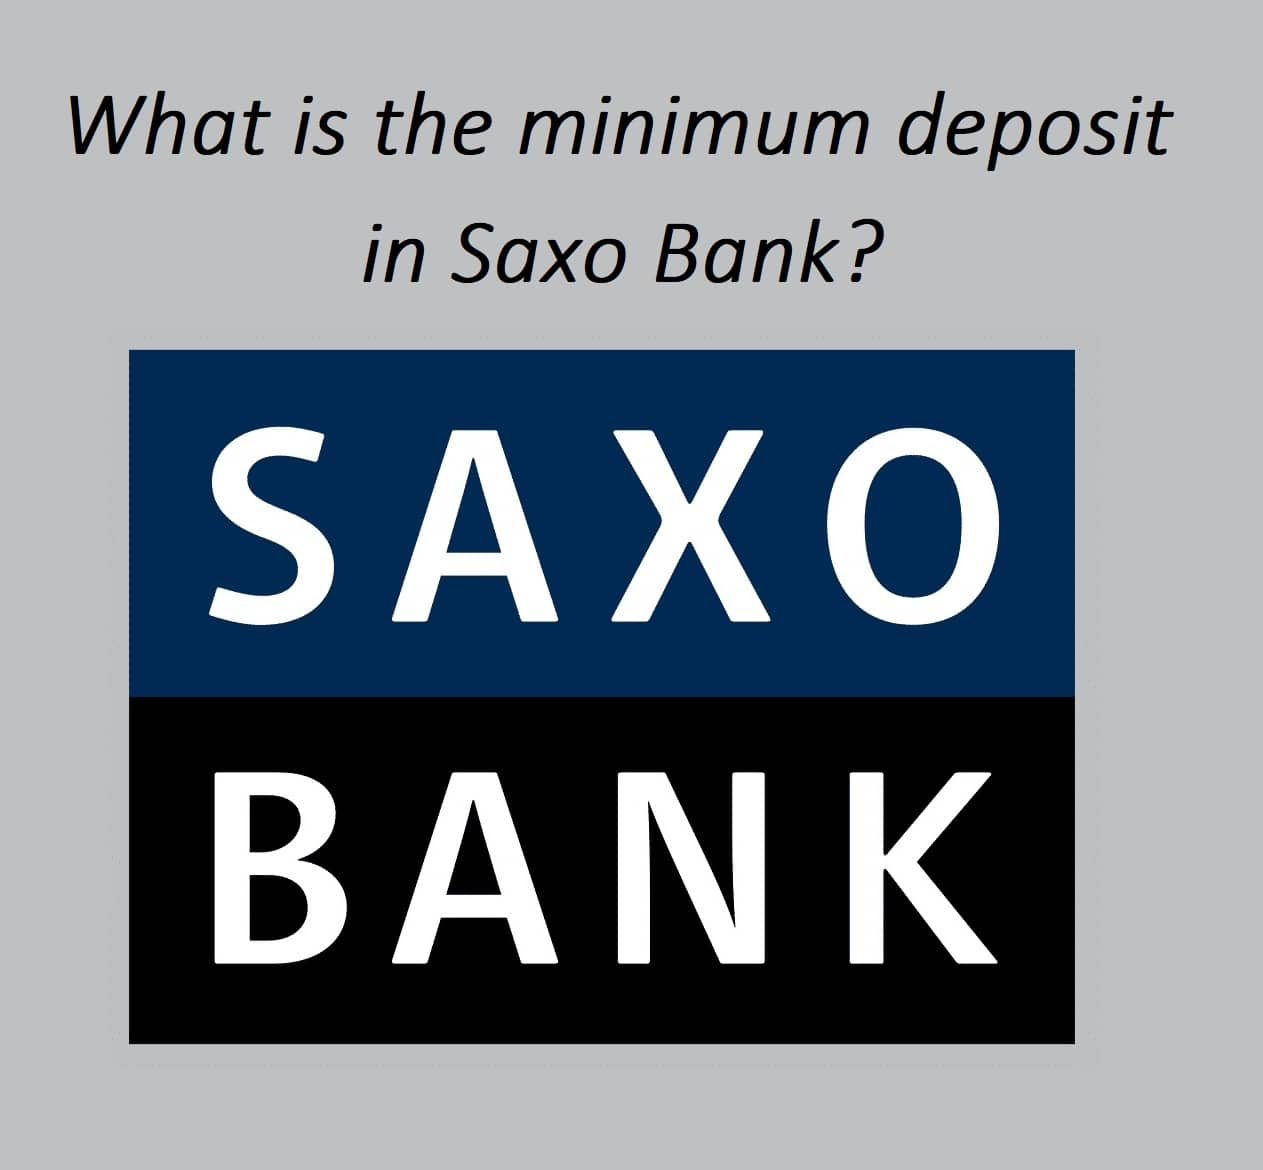 What is the minimum deposit amount in your Saxo Bank account